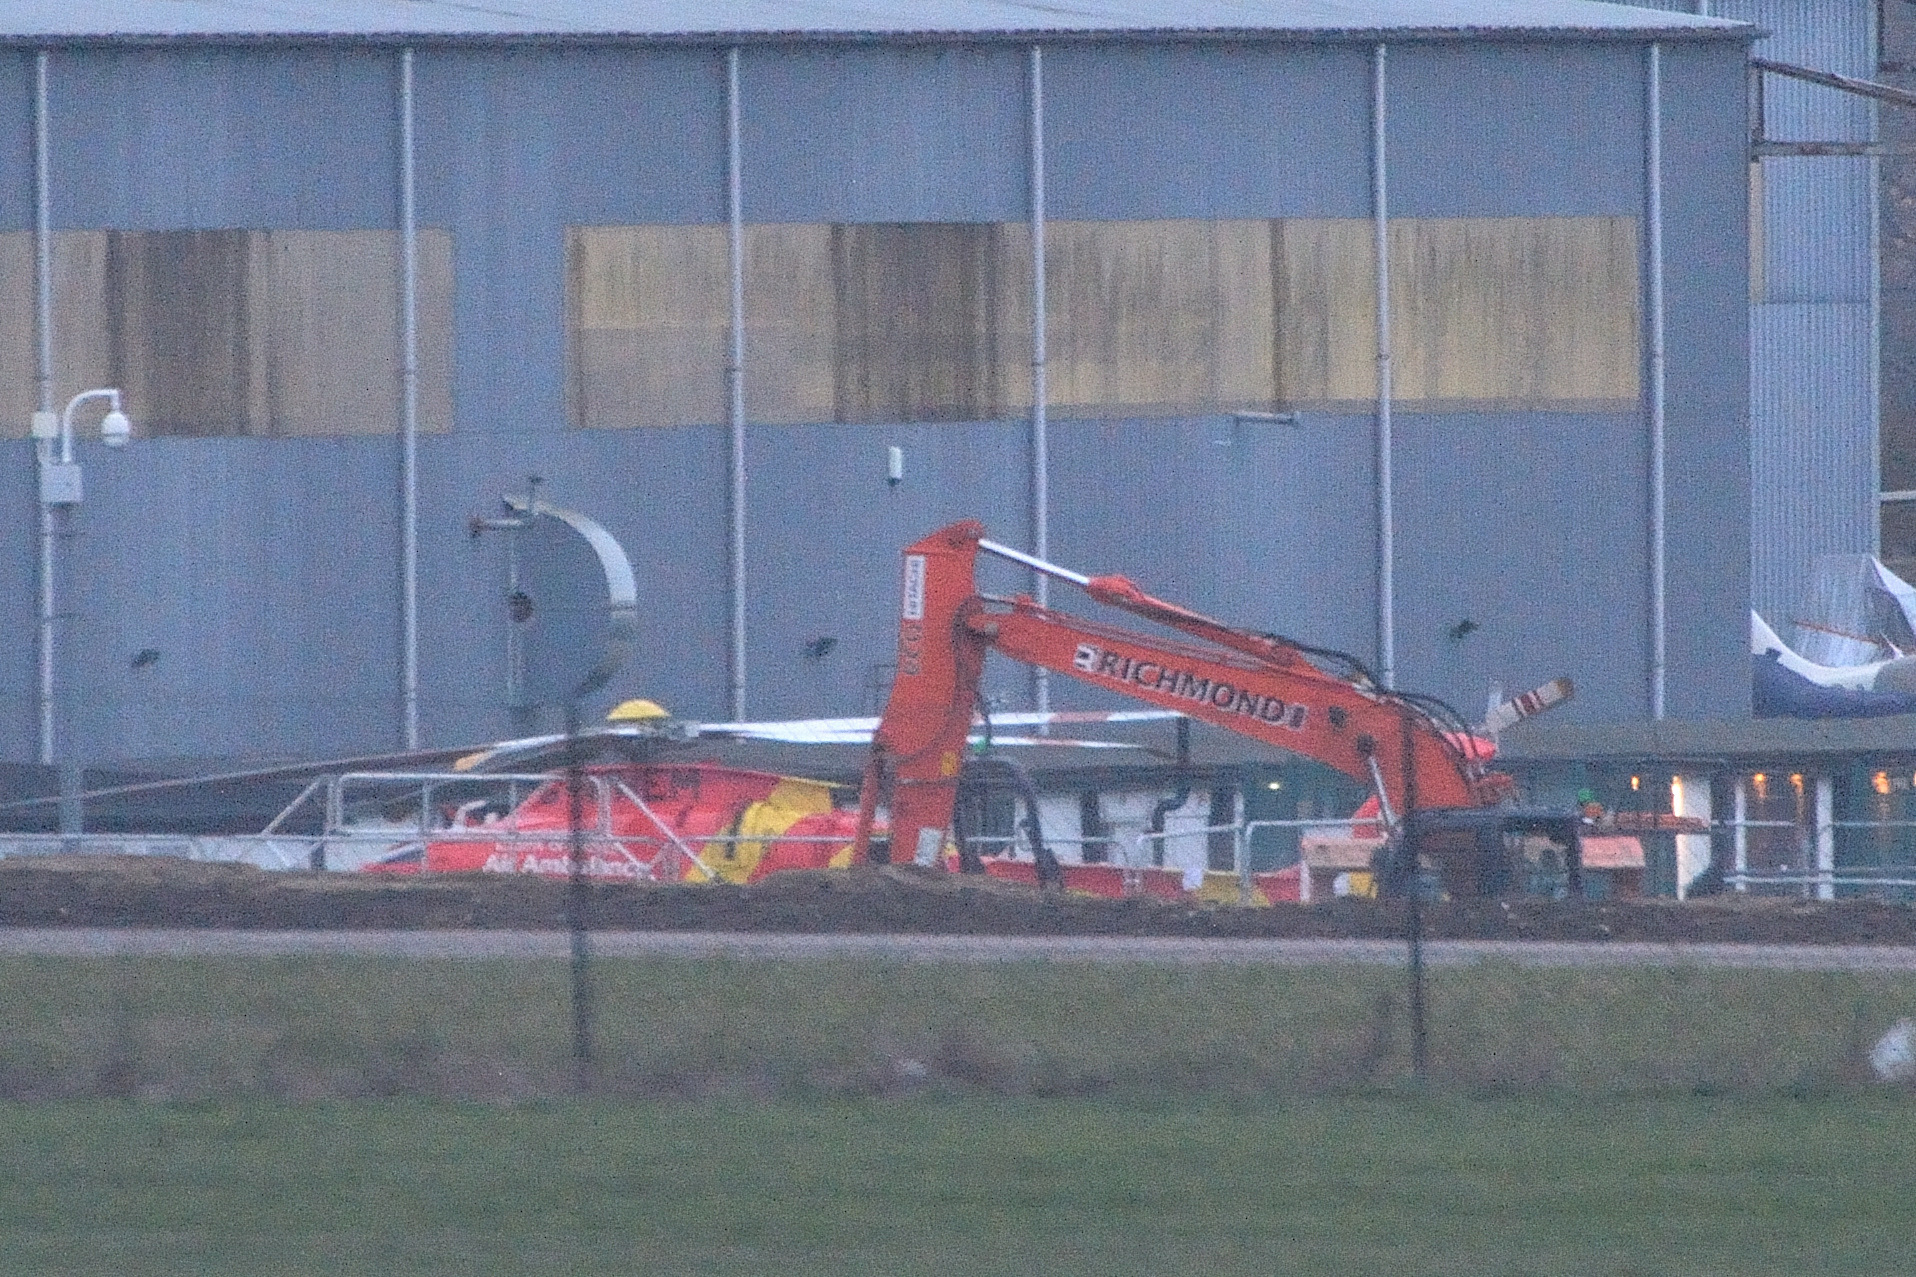 Work has started on the new Police helecopter base at North Weald Airfield. (27-1-2019) EL92408_01